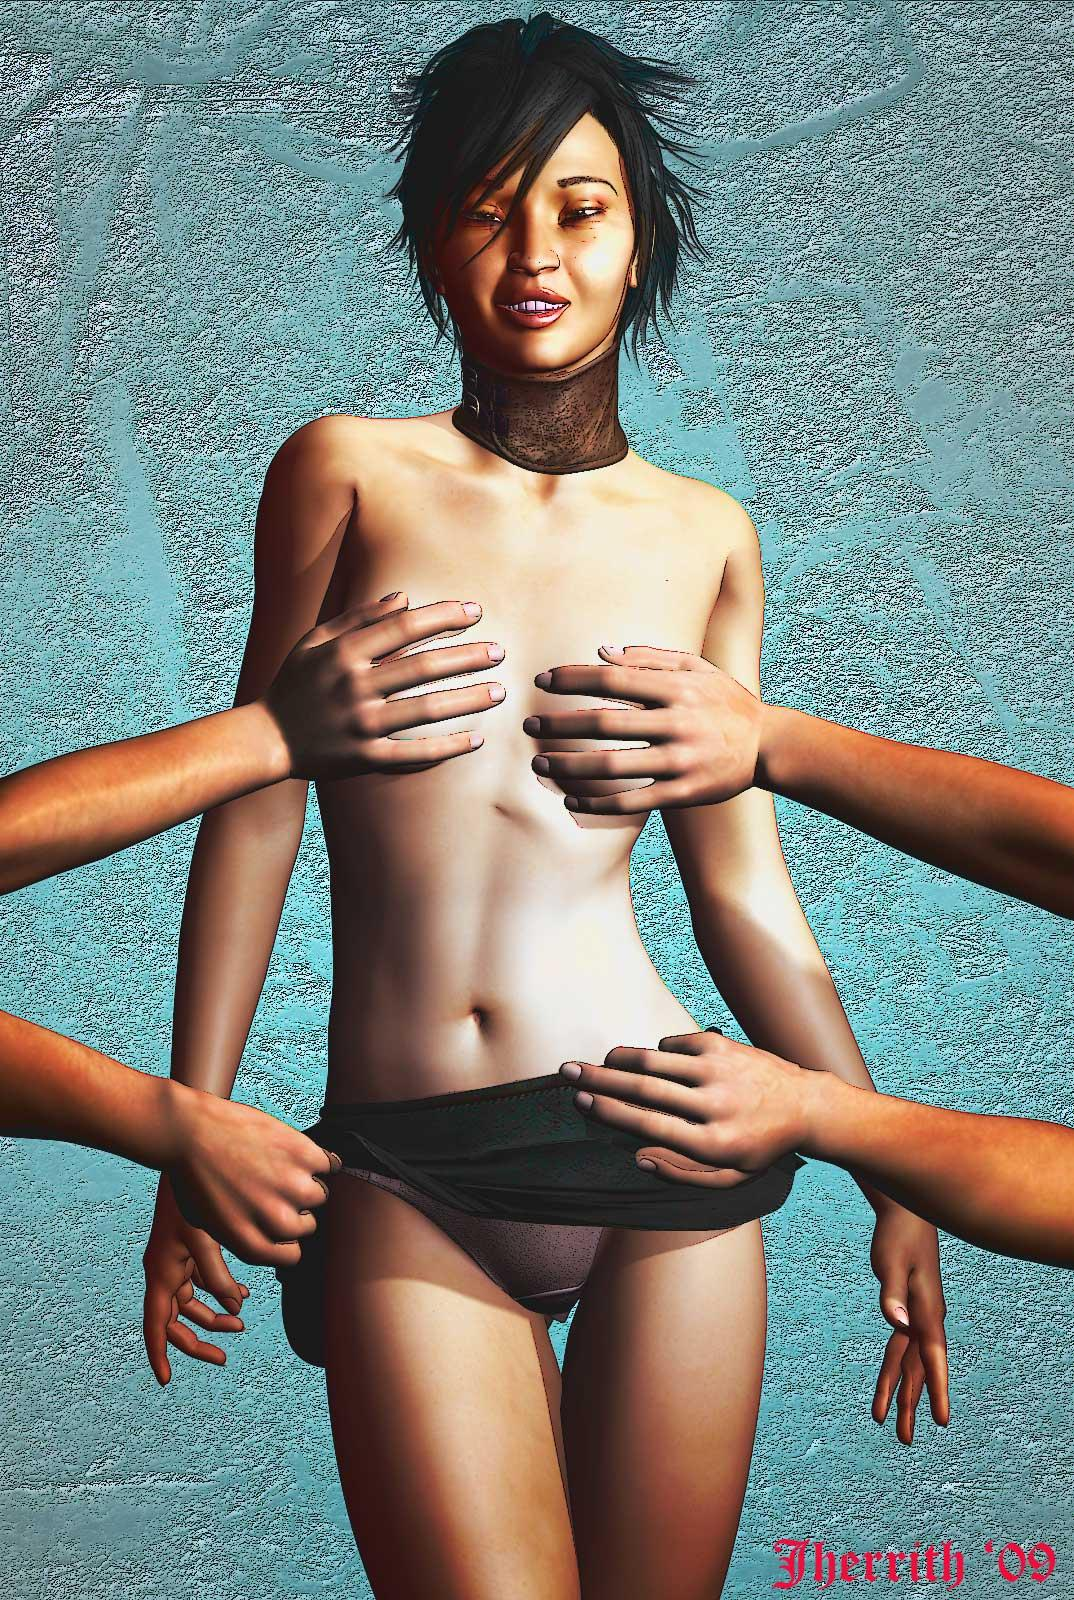 Touch Me (implied nudity)